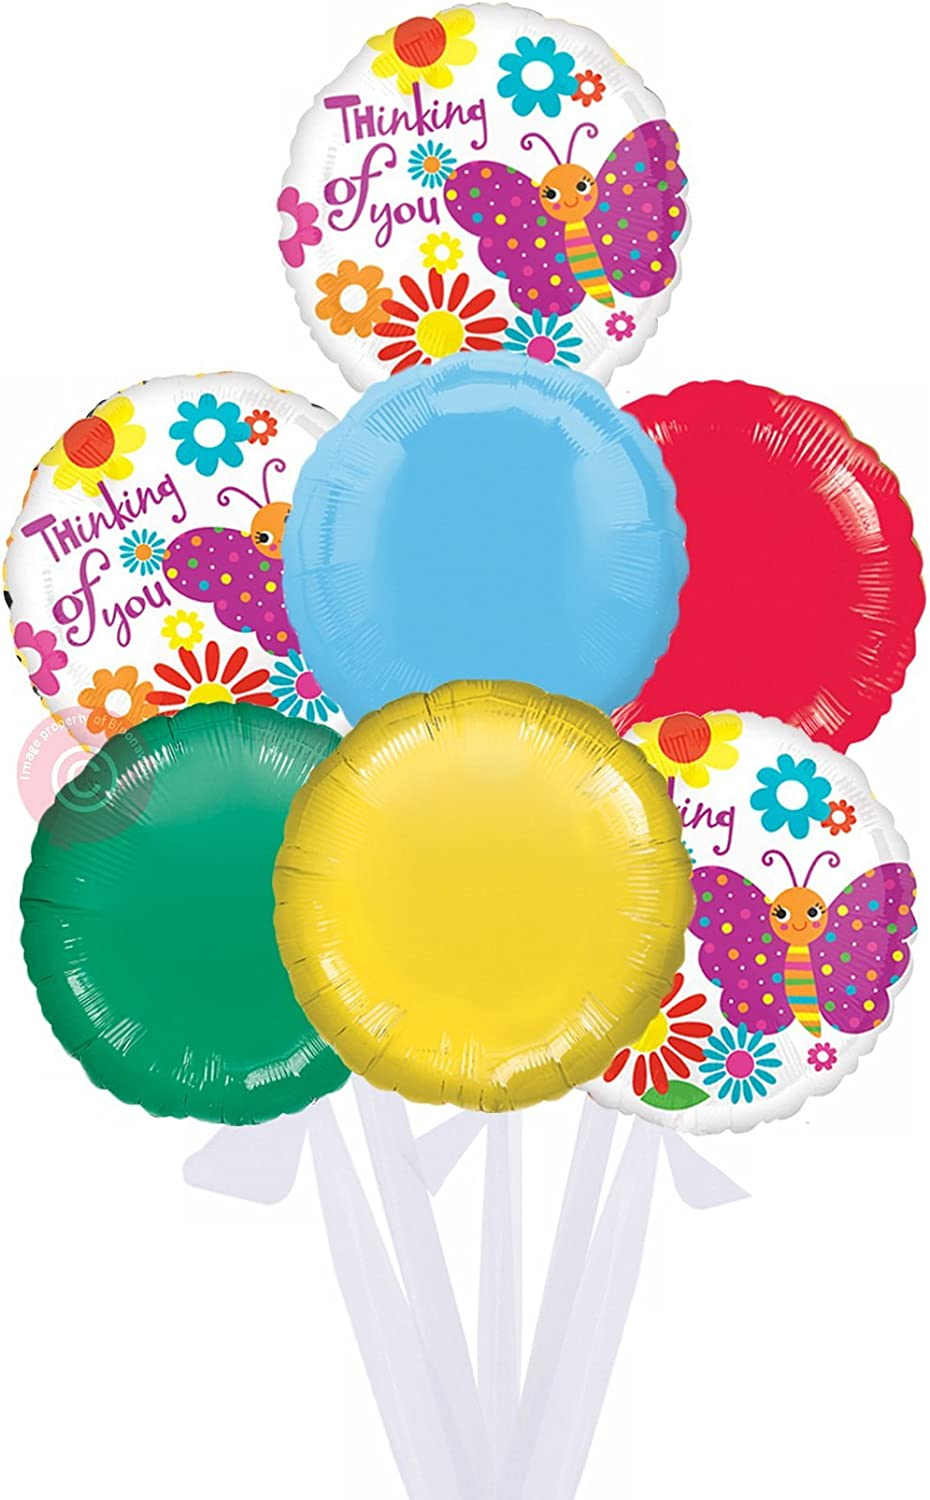 Cute Butterfly Thinking of You  Inflated Helium Balloon Delivered in a Box  Bigger Bouquet  7 Balloons  Bloonaway